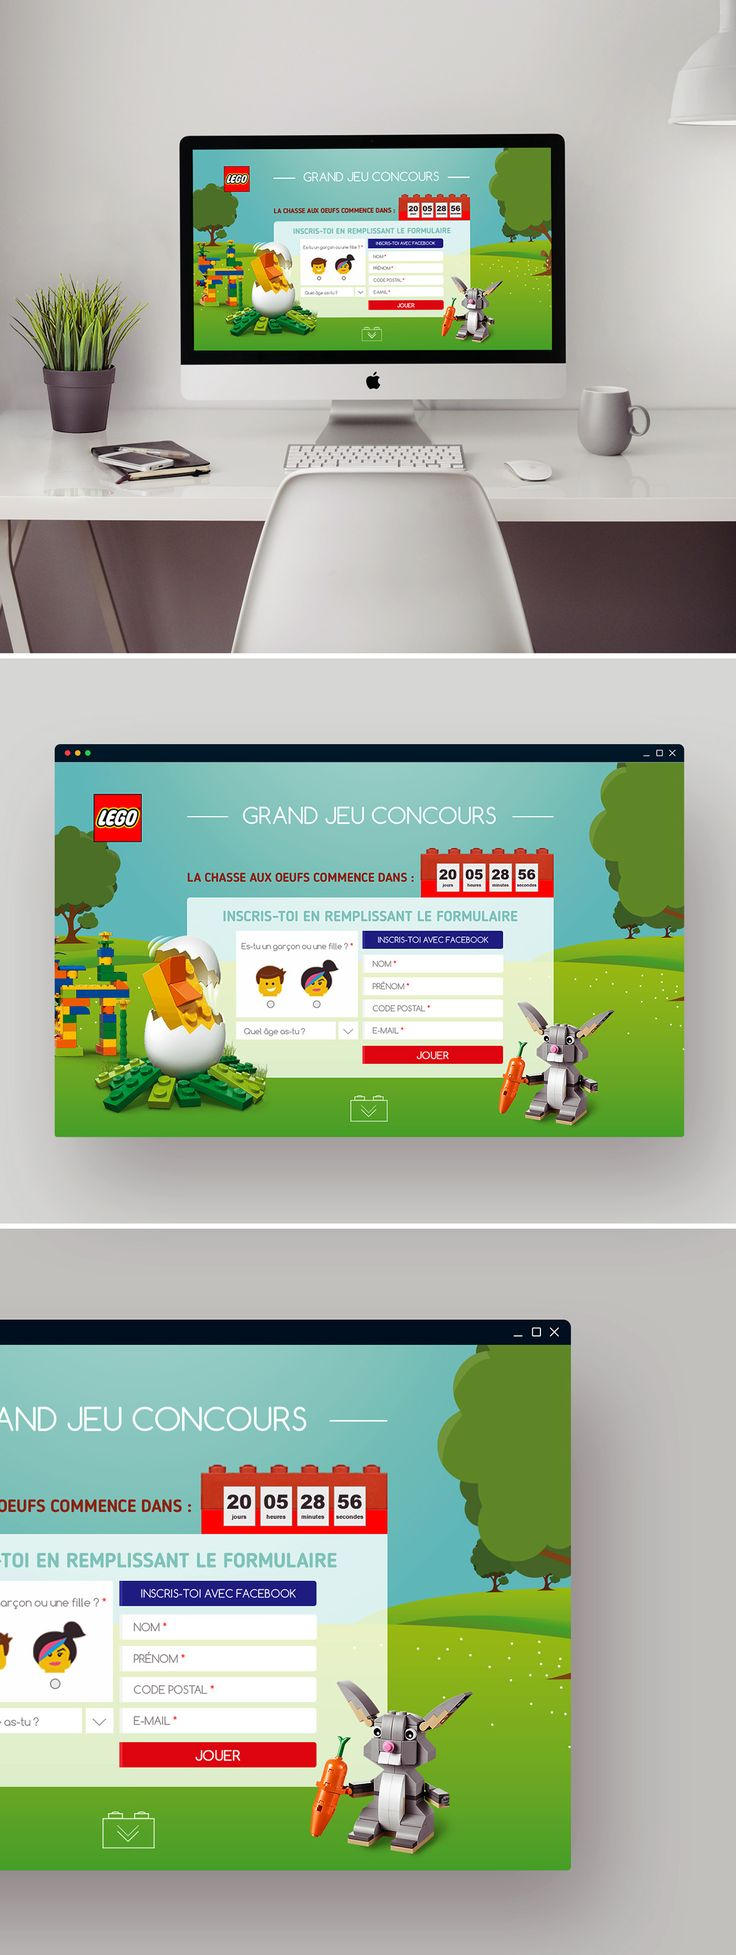 "#UI #Design #Advergame  Check out this @Behance project: ""ADVERGAME LEGO"" https://www.behance.net/gallery/41482761/ADVERGAME-LEGO"